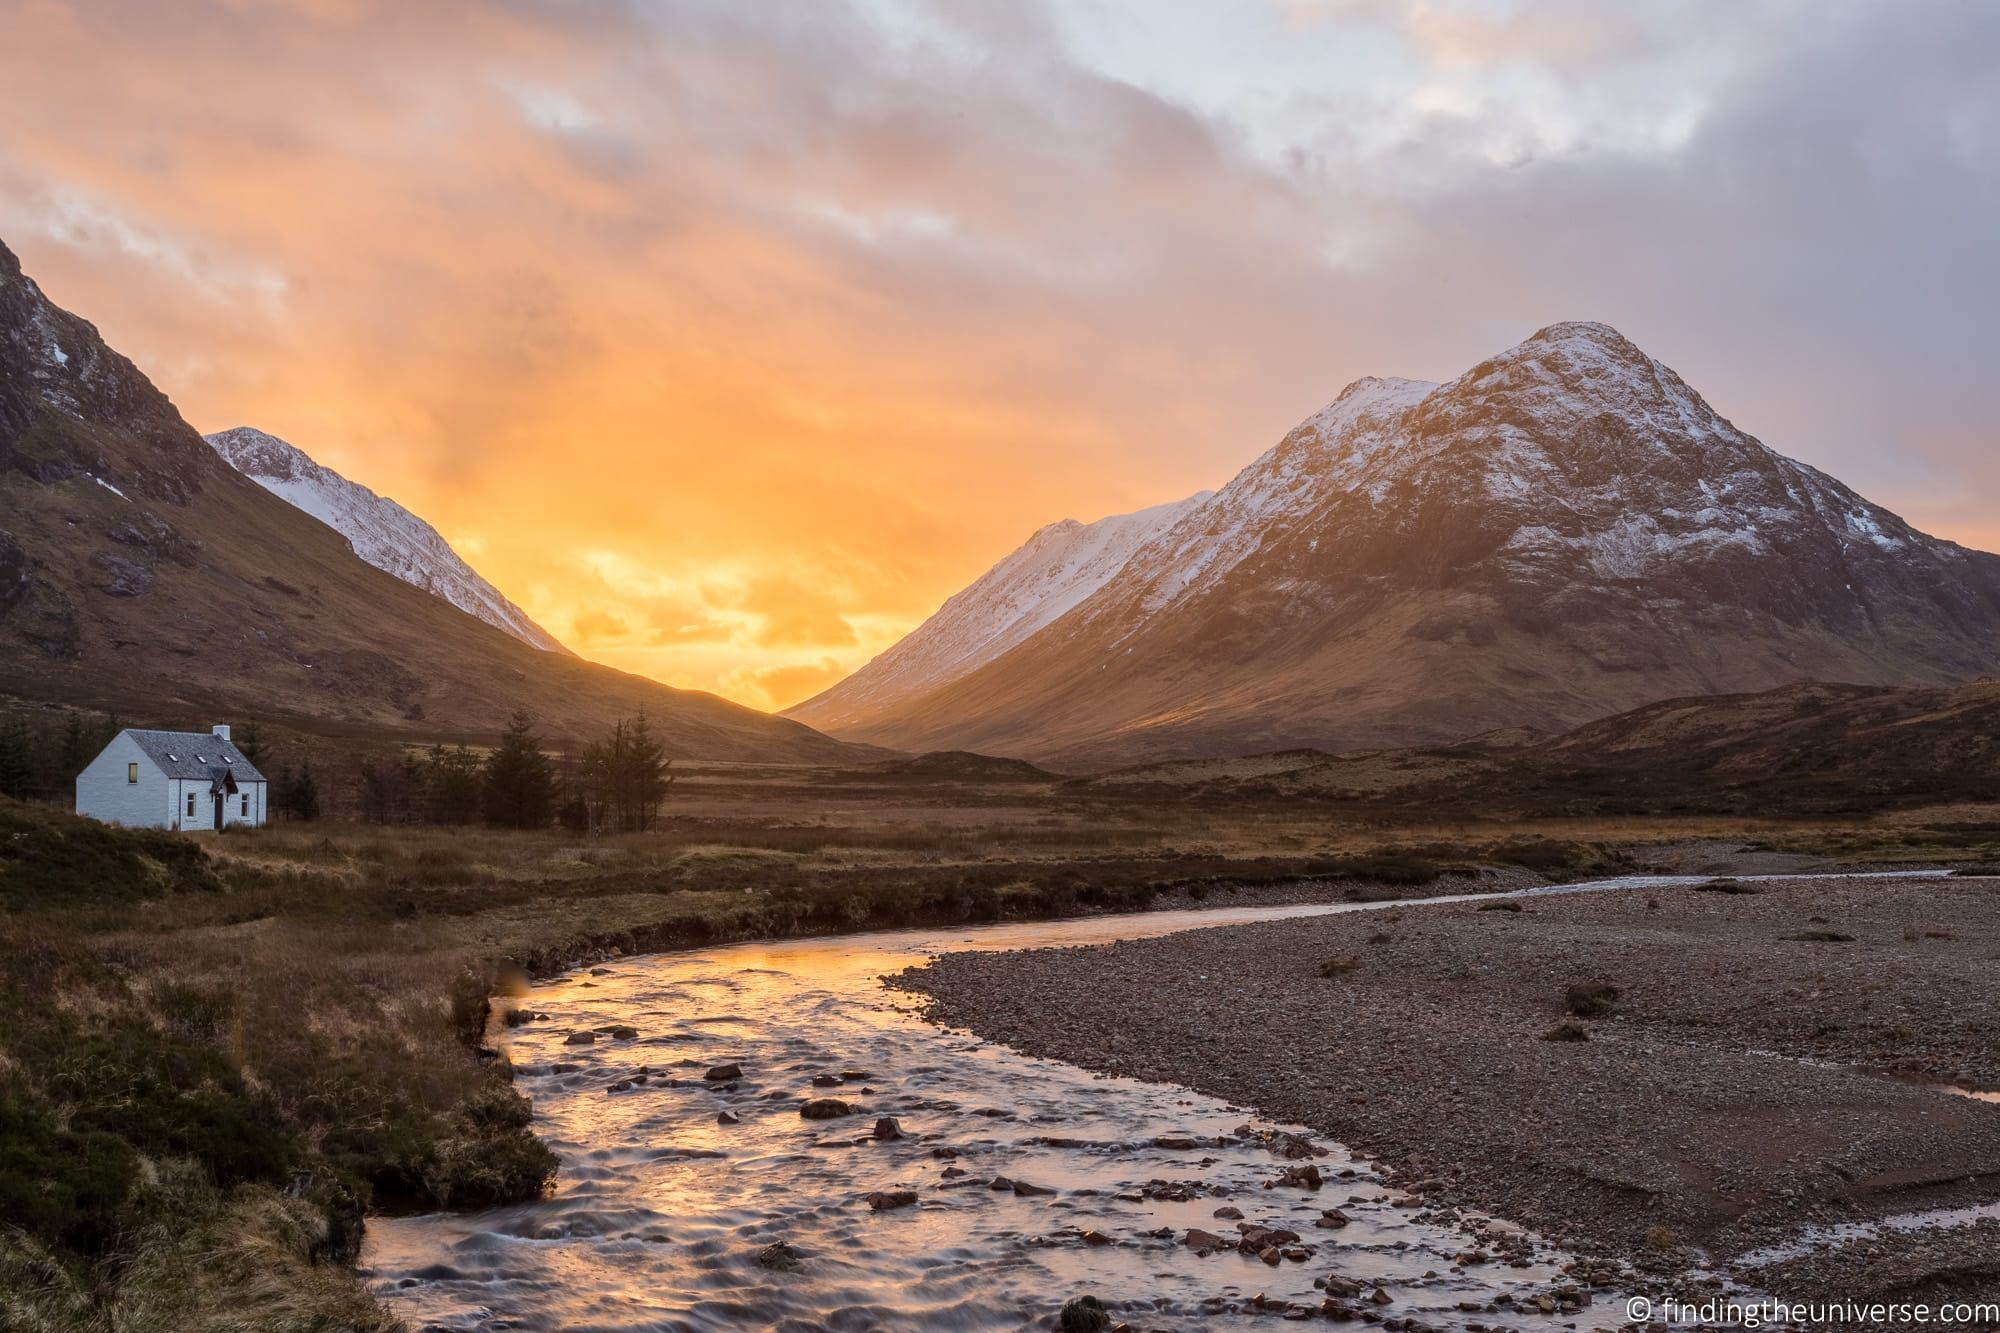 Glen Coe Scotland - A Complete Guide to Visiting